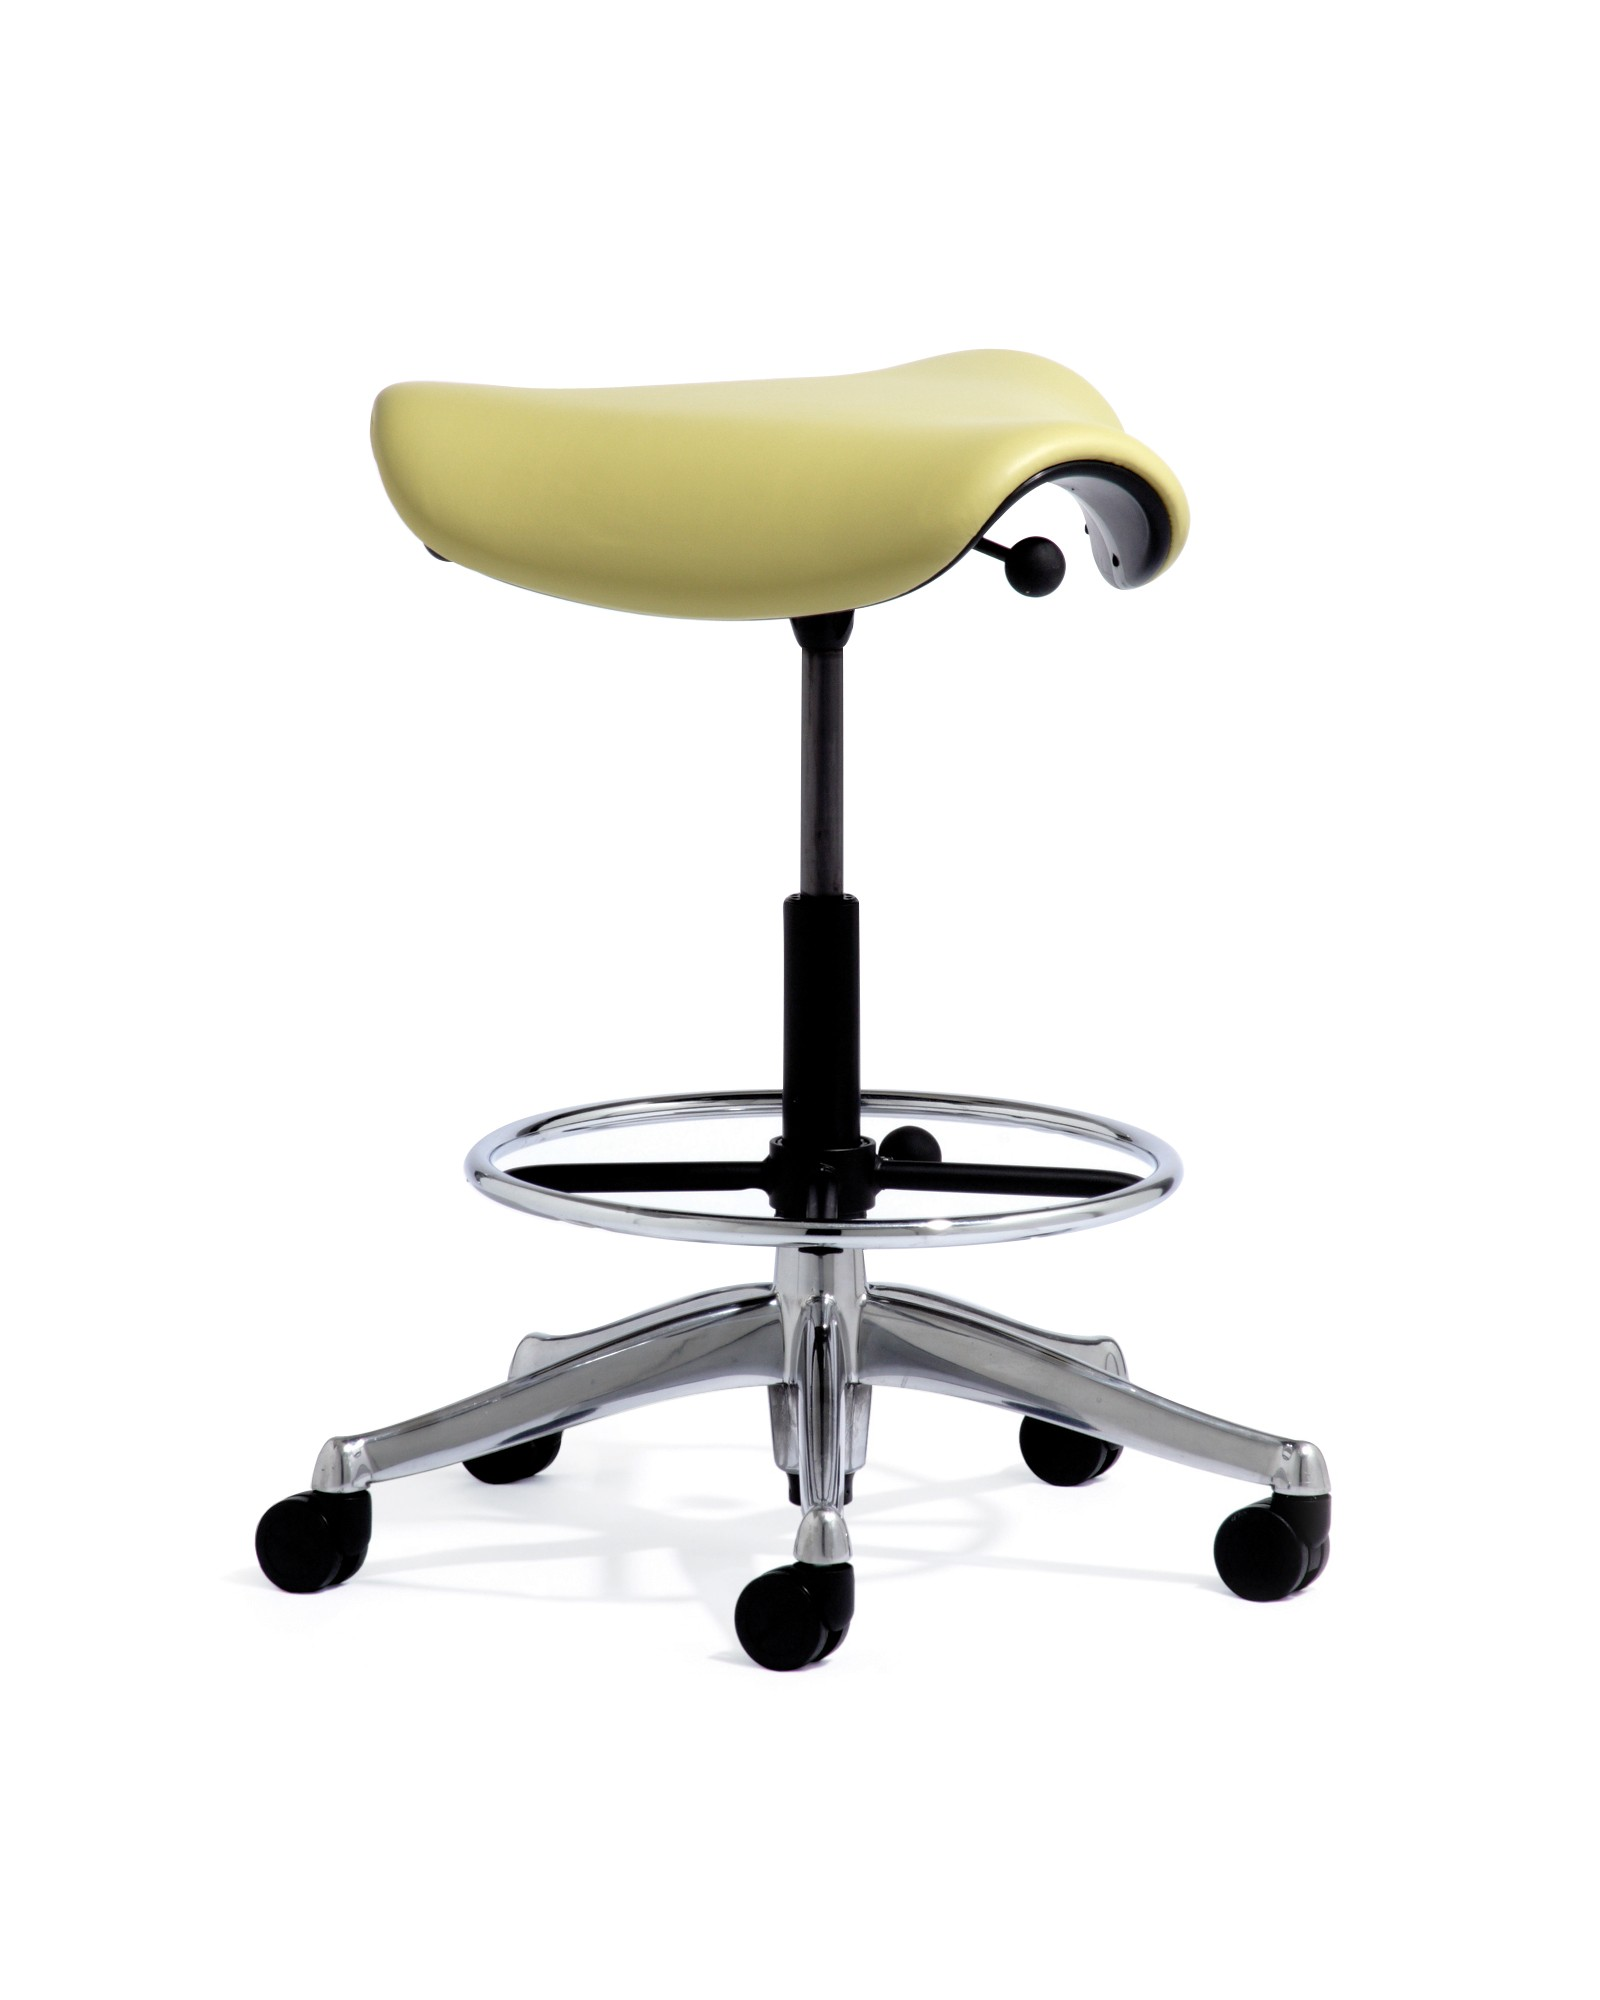 Humanscale Saddle Stool | Biomorph Adjustable Computer Furniture